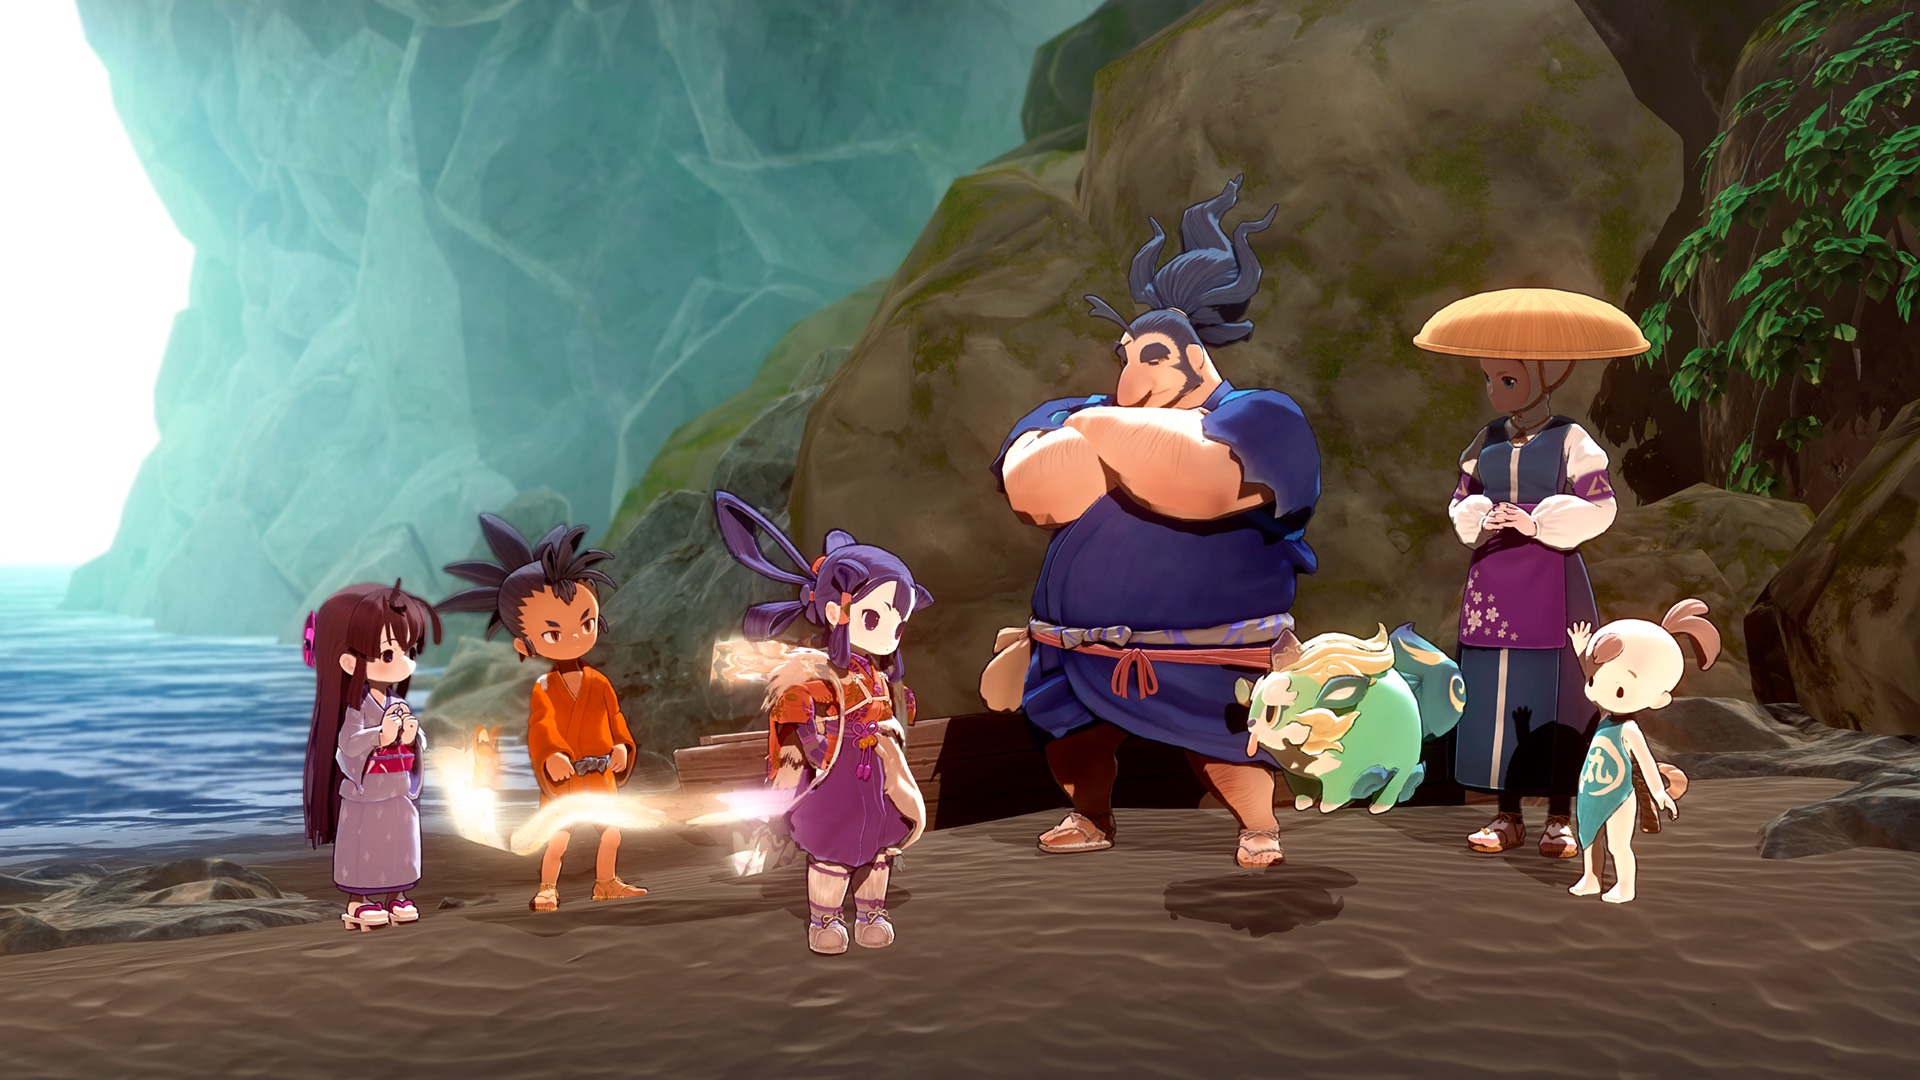 Sakuna: Of Rice and Ruin Screenshot of a colorful cast of characters standing near the water's edge in a cave